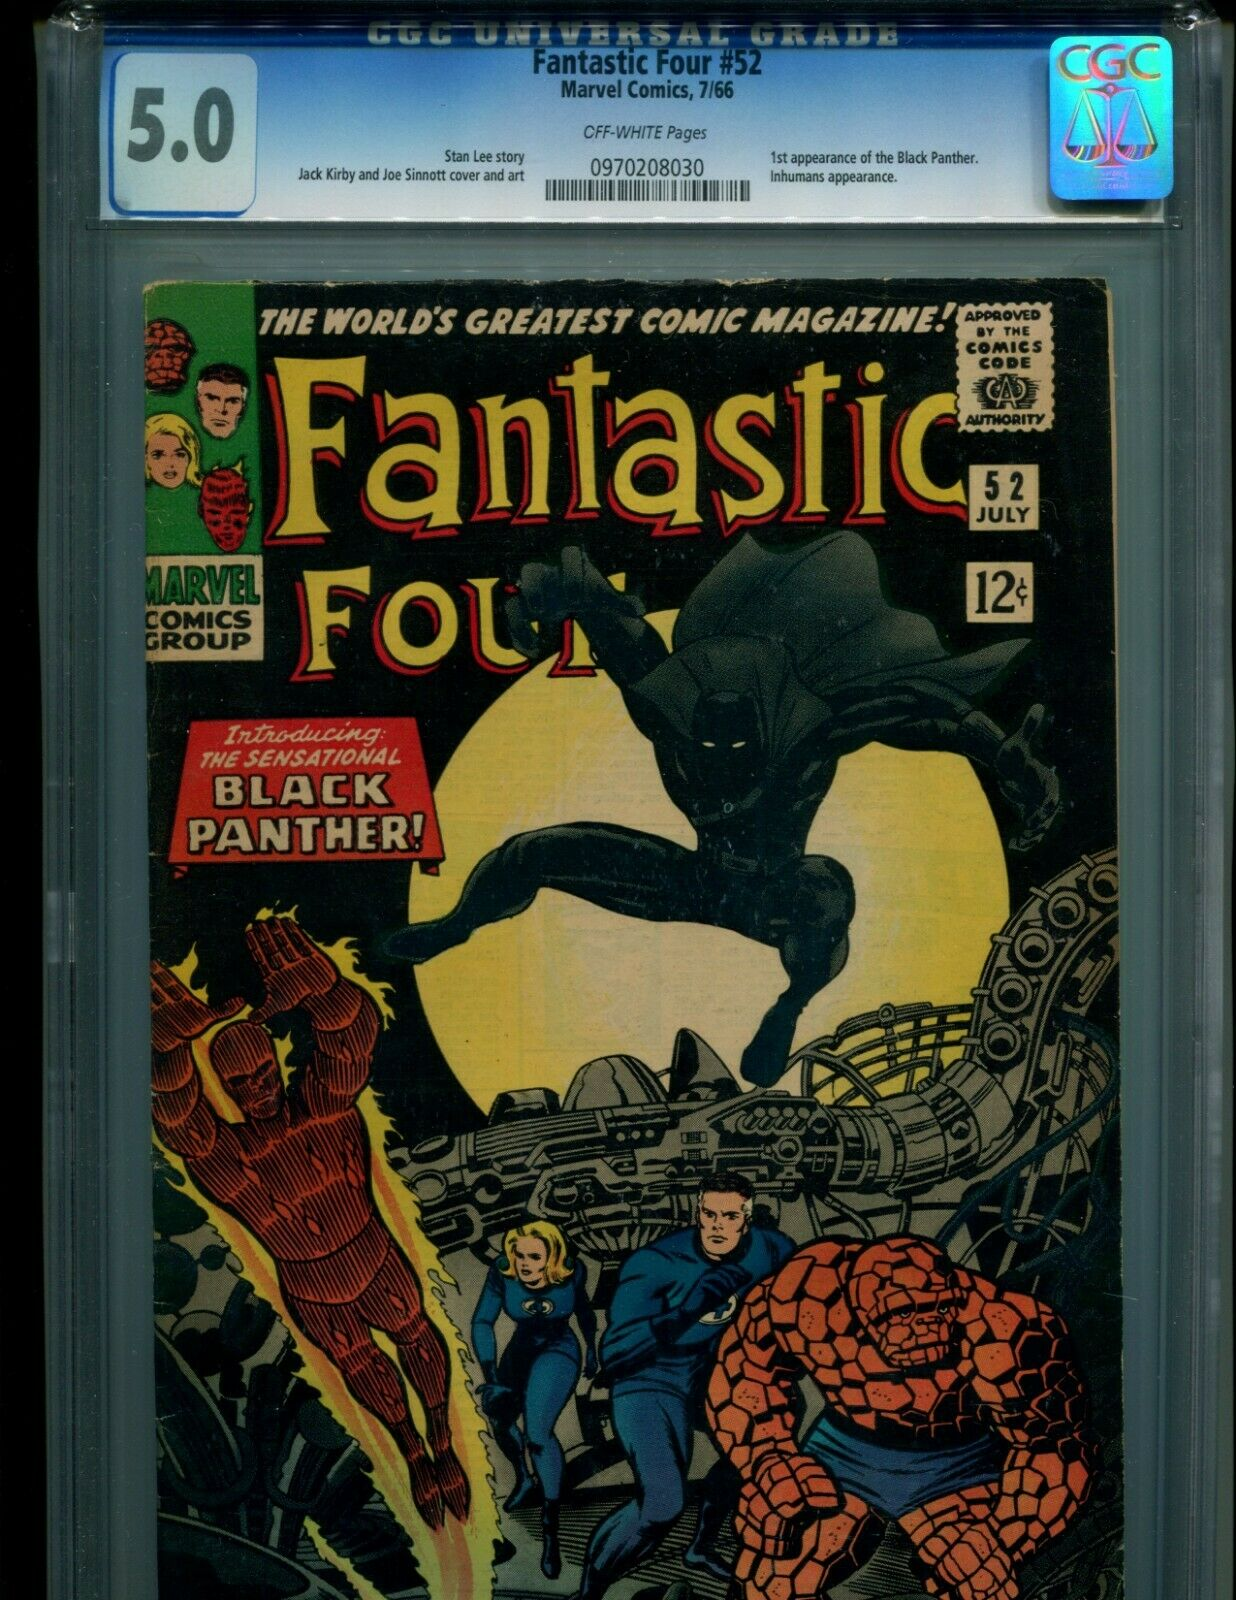 FANTASTIC FOUR 52 CGC 5.0 O/W PGS V. 1 1ST BLACK PANTHER NOT 4, 5, 48, 49